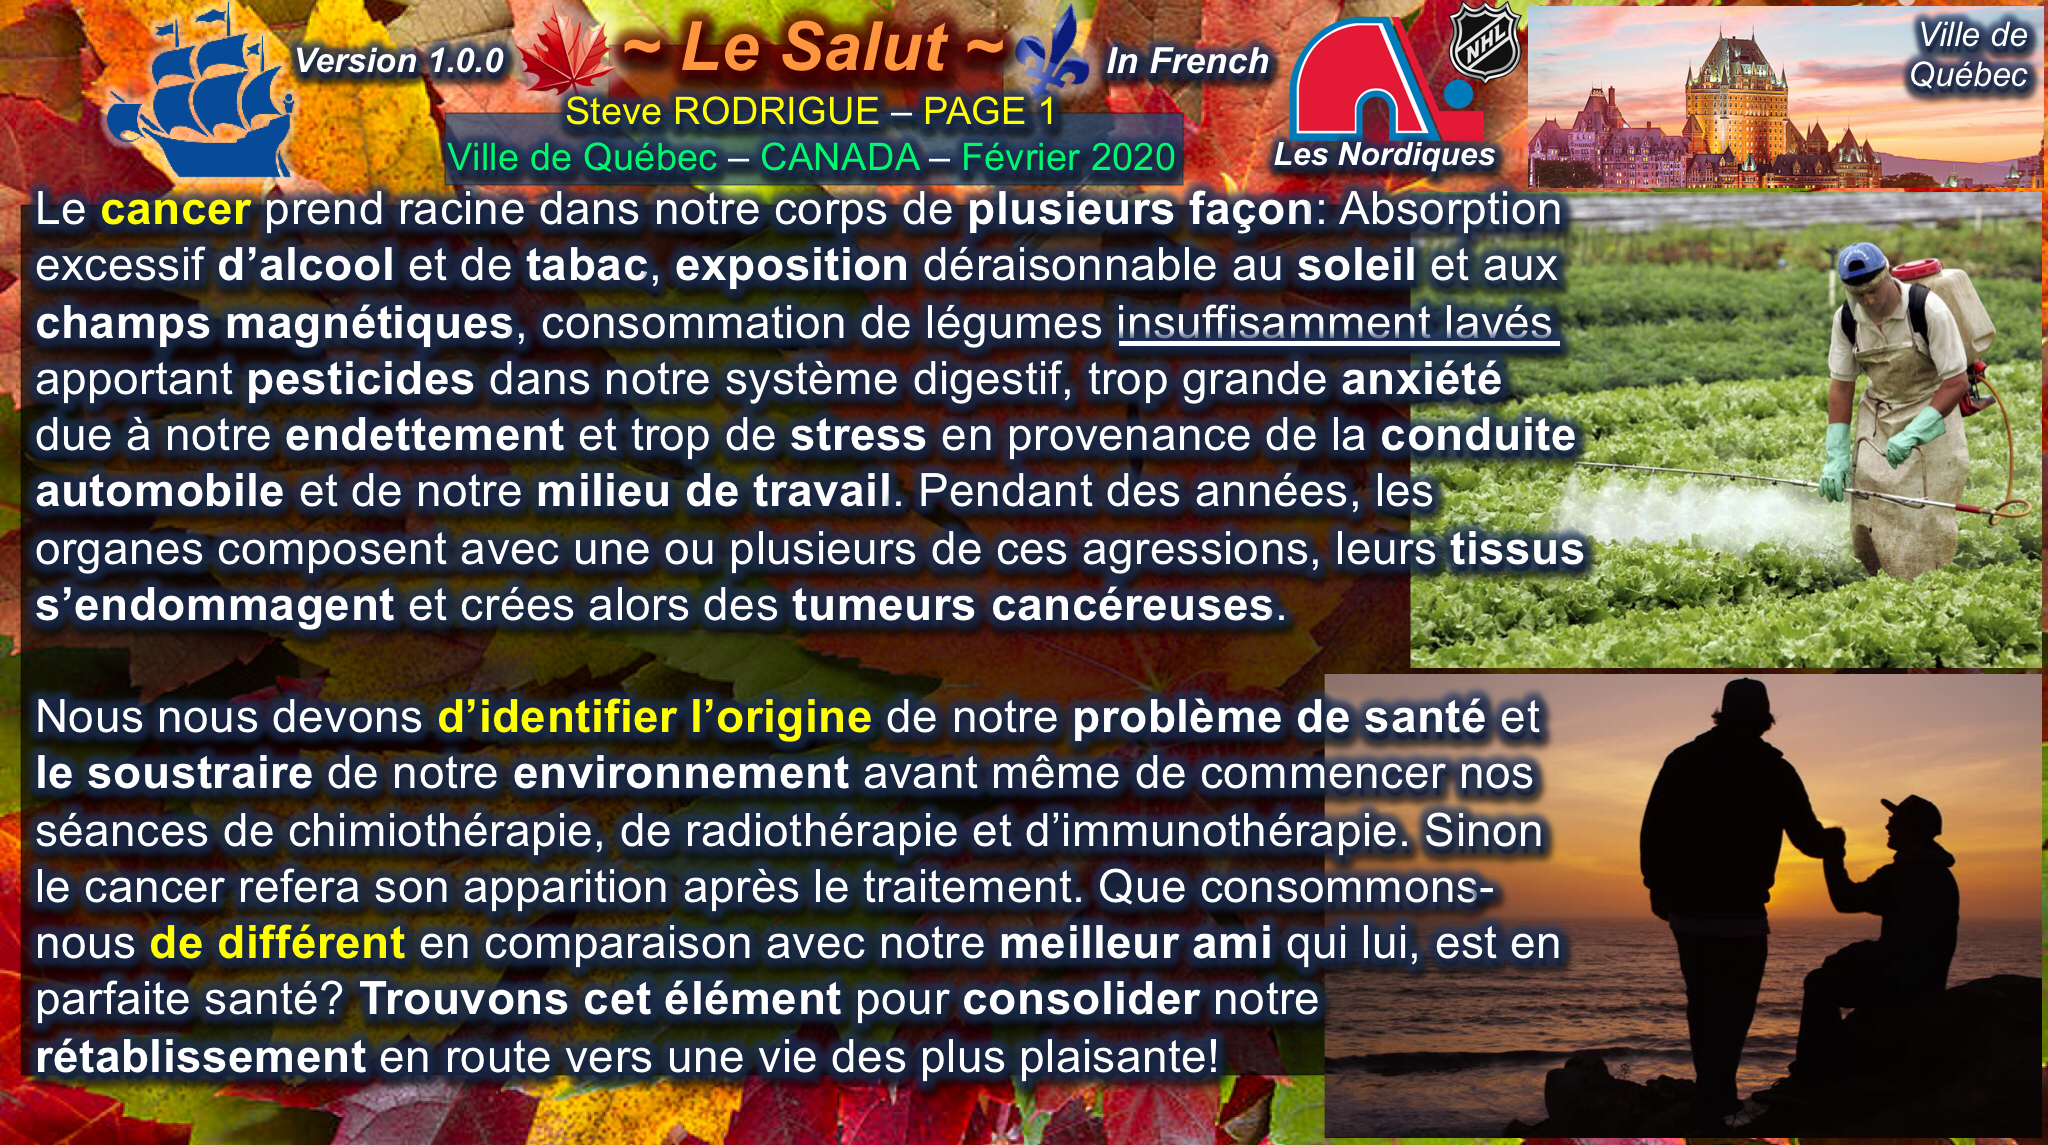 Identification de l'origine du cancer